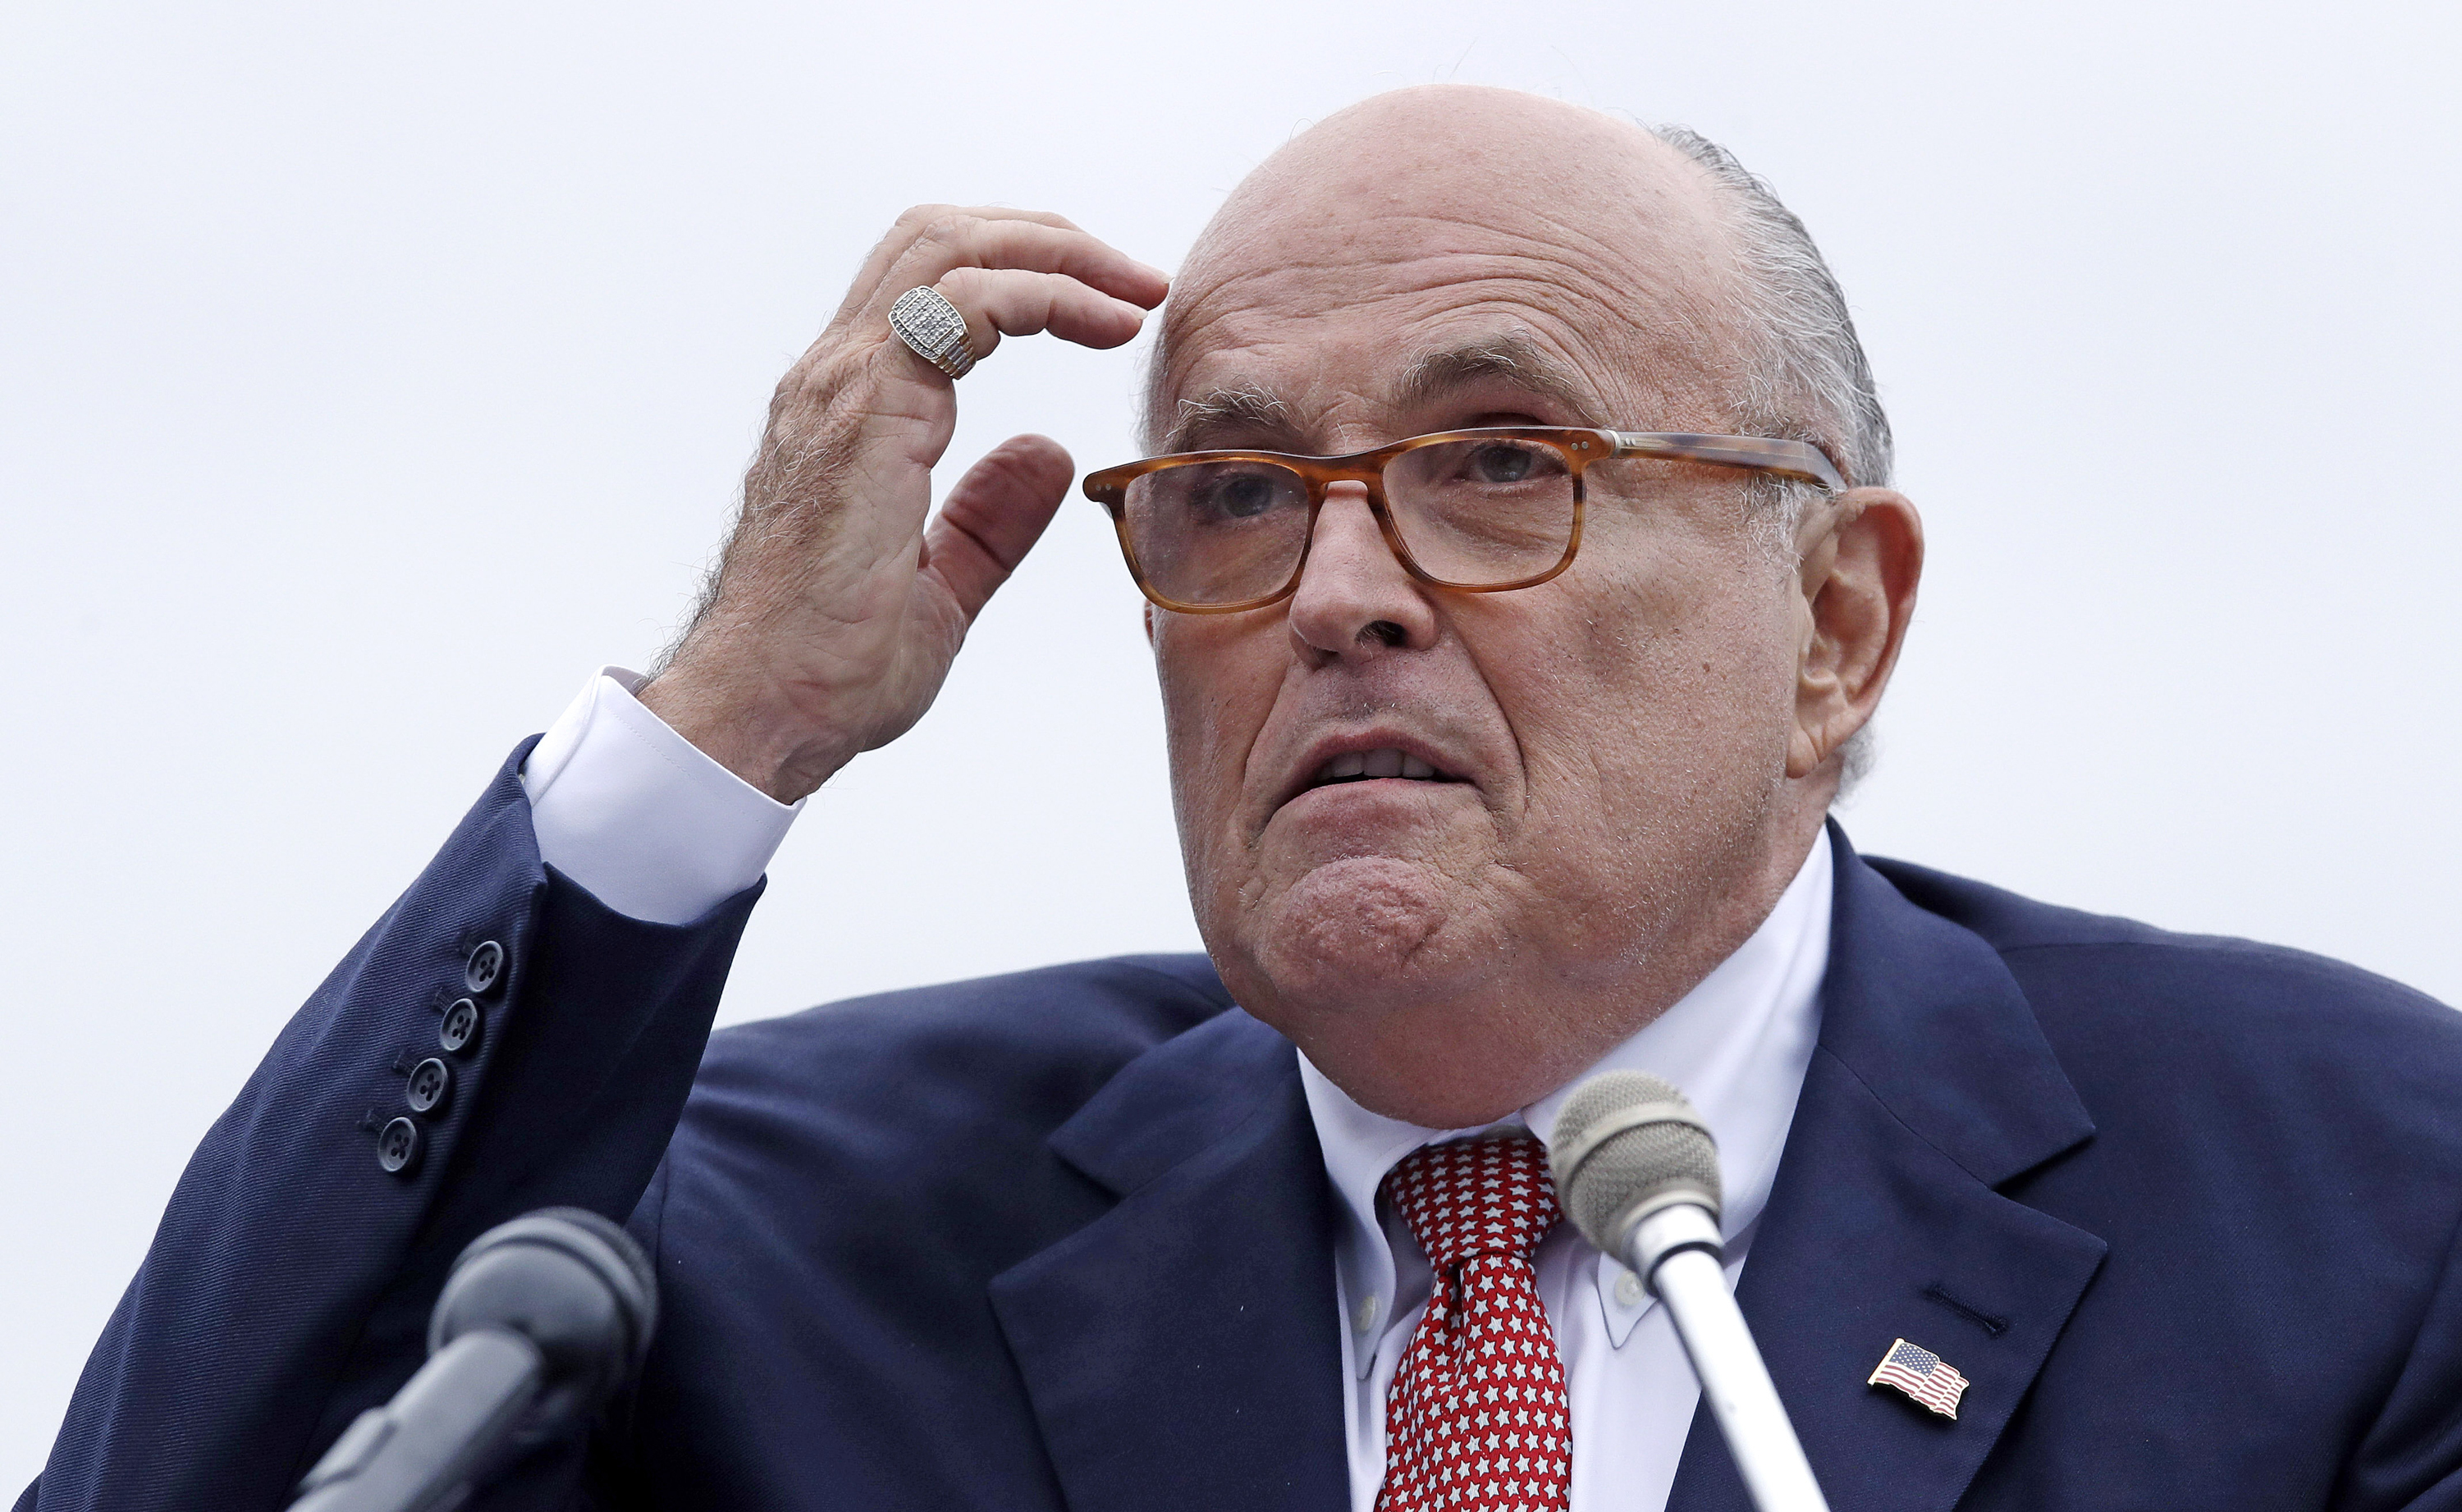 We Have No Idea Who Is Paying Rudy Giuliani The Washington Post Practice in family law, criminal, civil rights, credit & debt, general practice, etc. https www washingtonpost com outlook 2019 10 10 we have no idea who is paying rudy giuliani